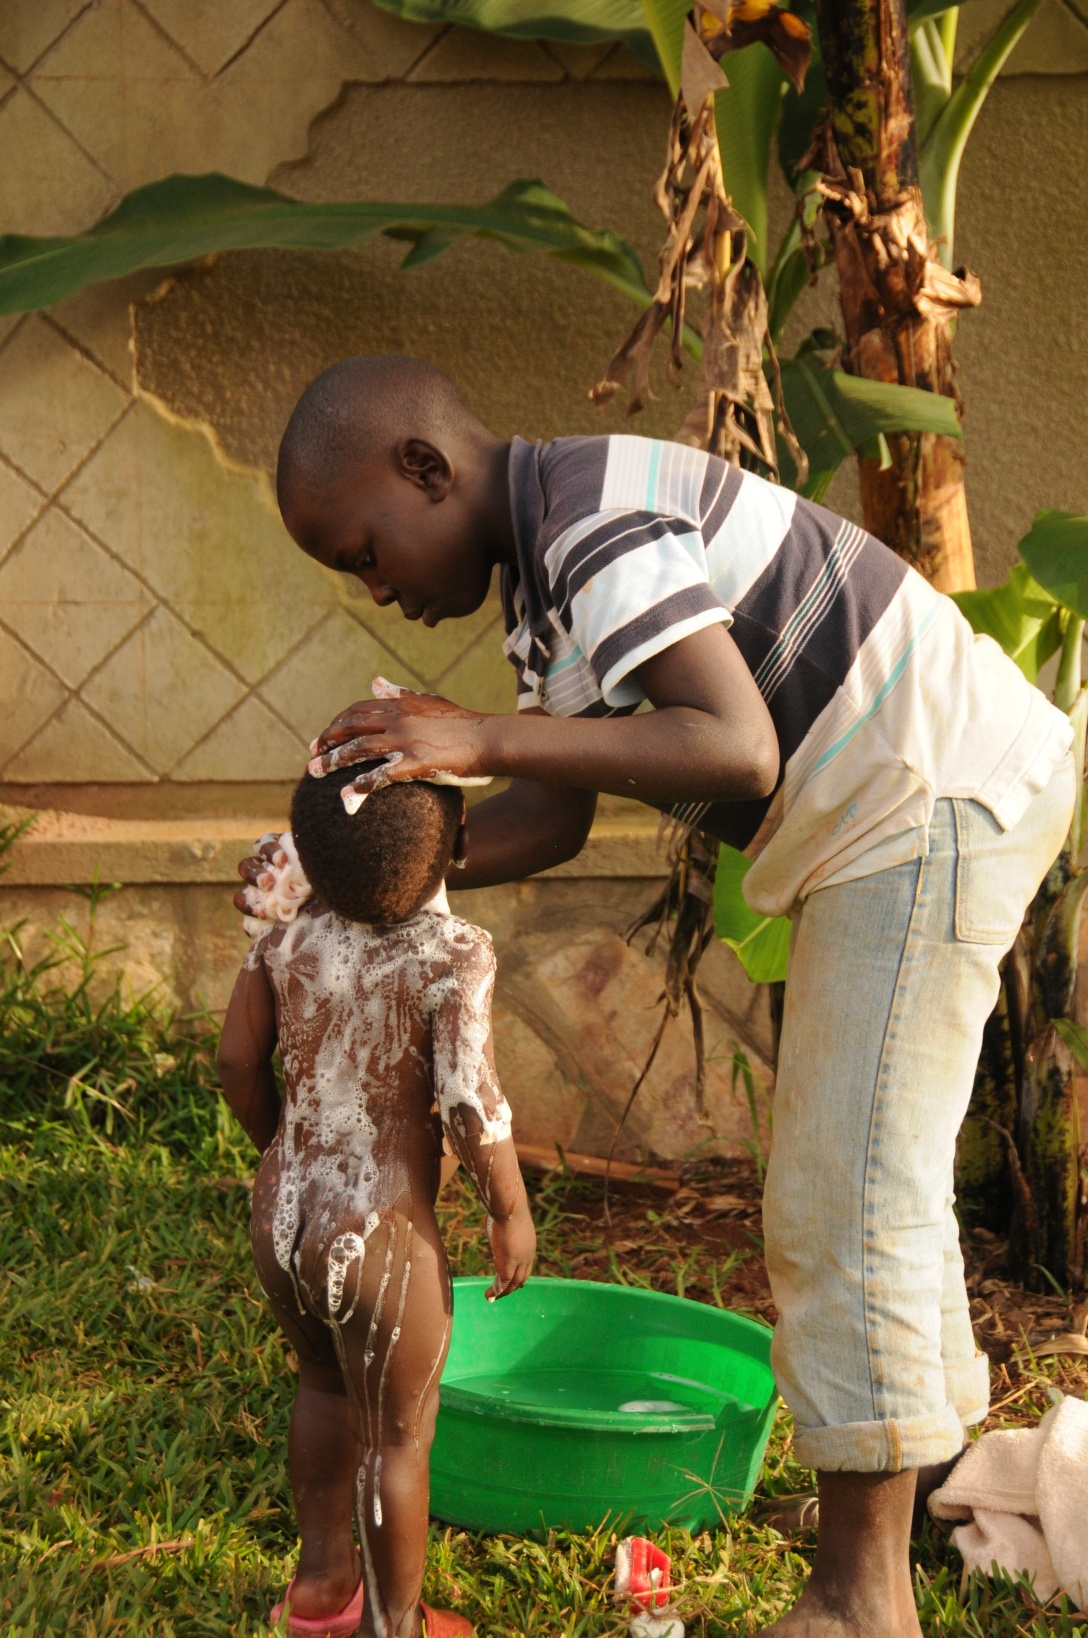 Musa loves children. He bathed Marvin as often as there was need.